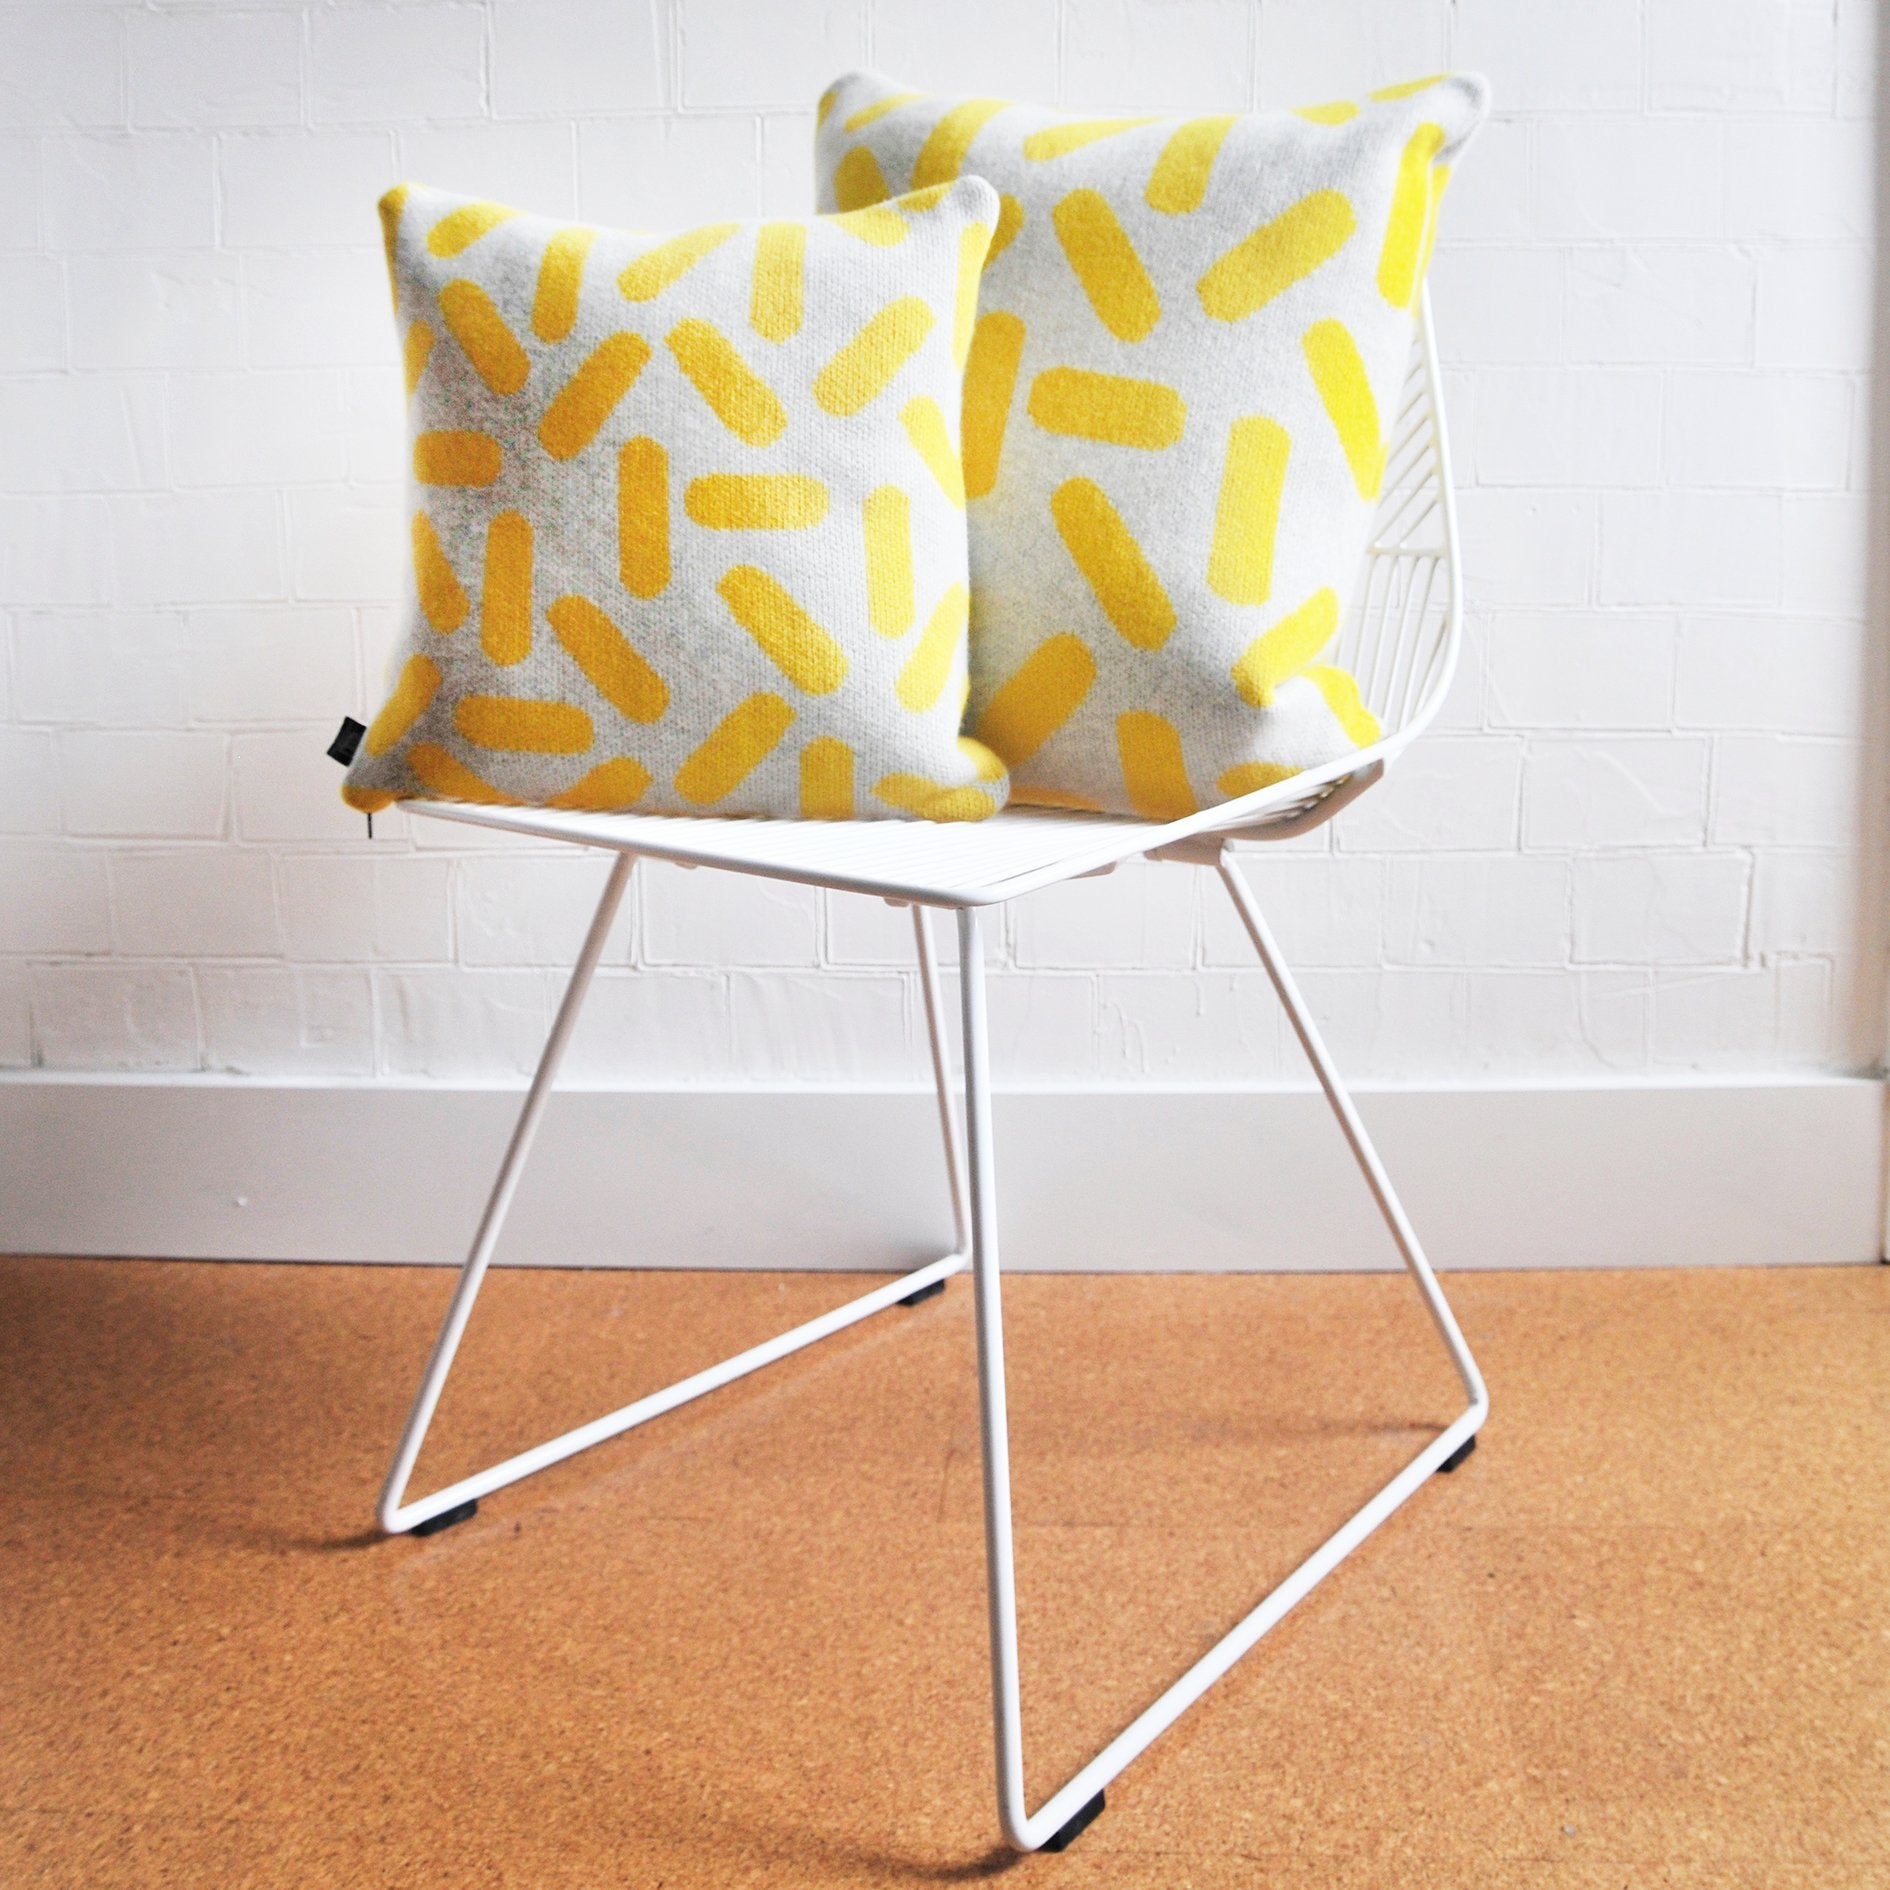 TIC-TAC CUSHION IN GREY AND YELLOW